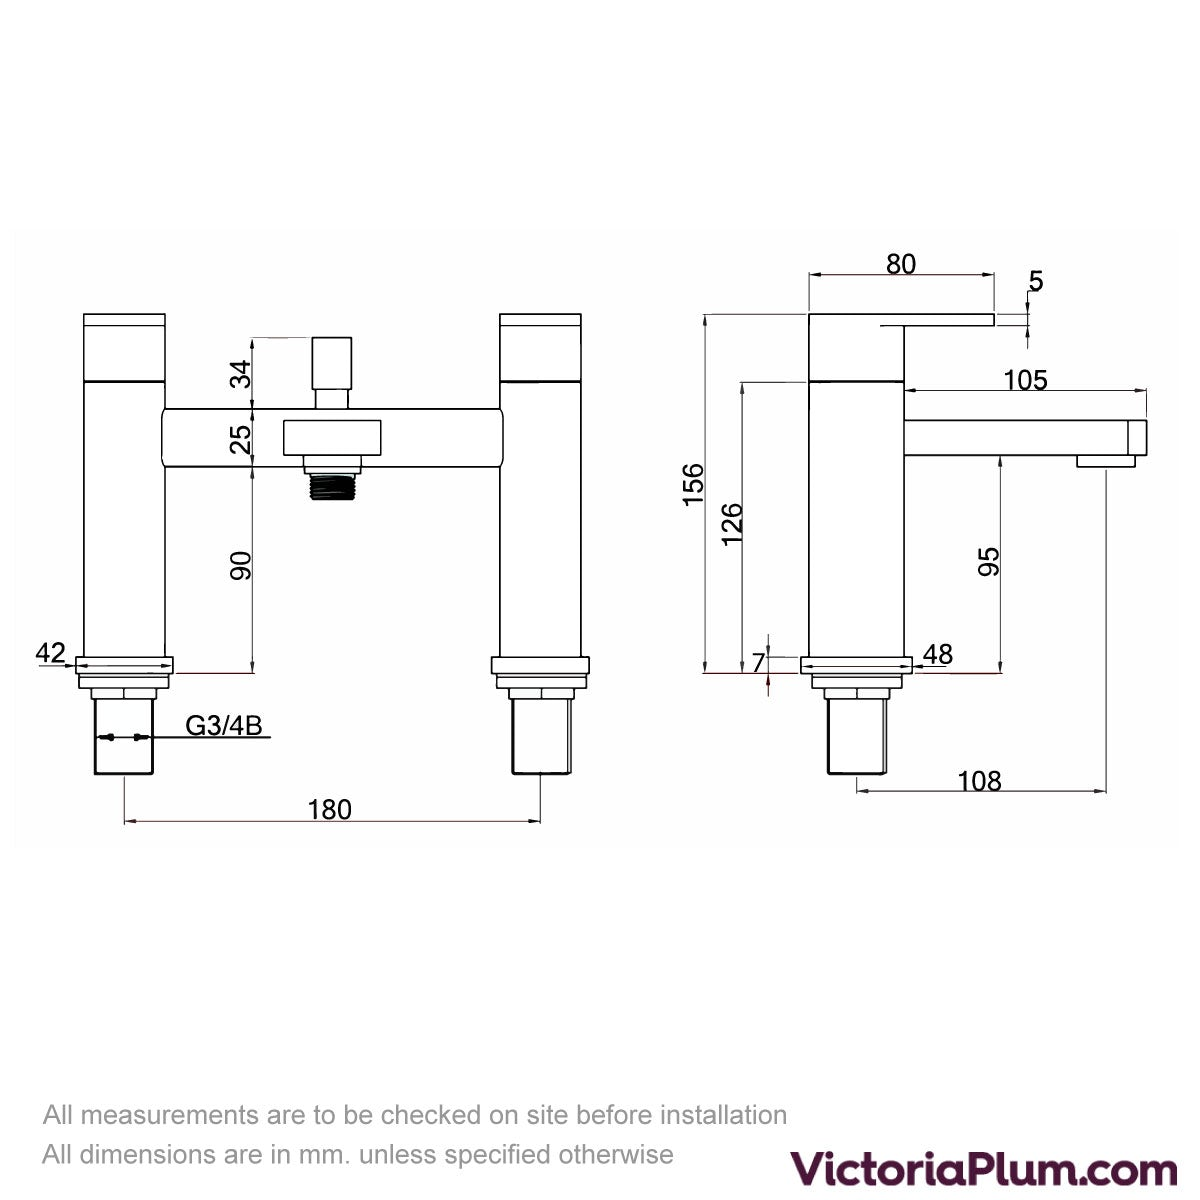 Dimensions for Kirke Connect bath shower mixer tap